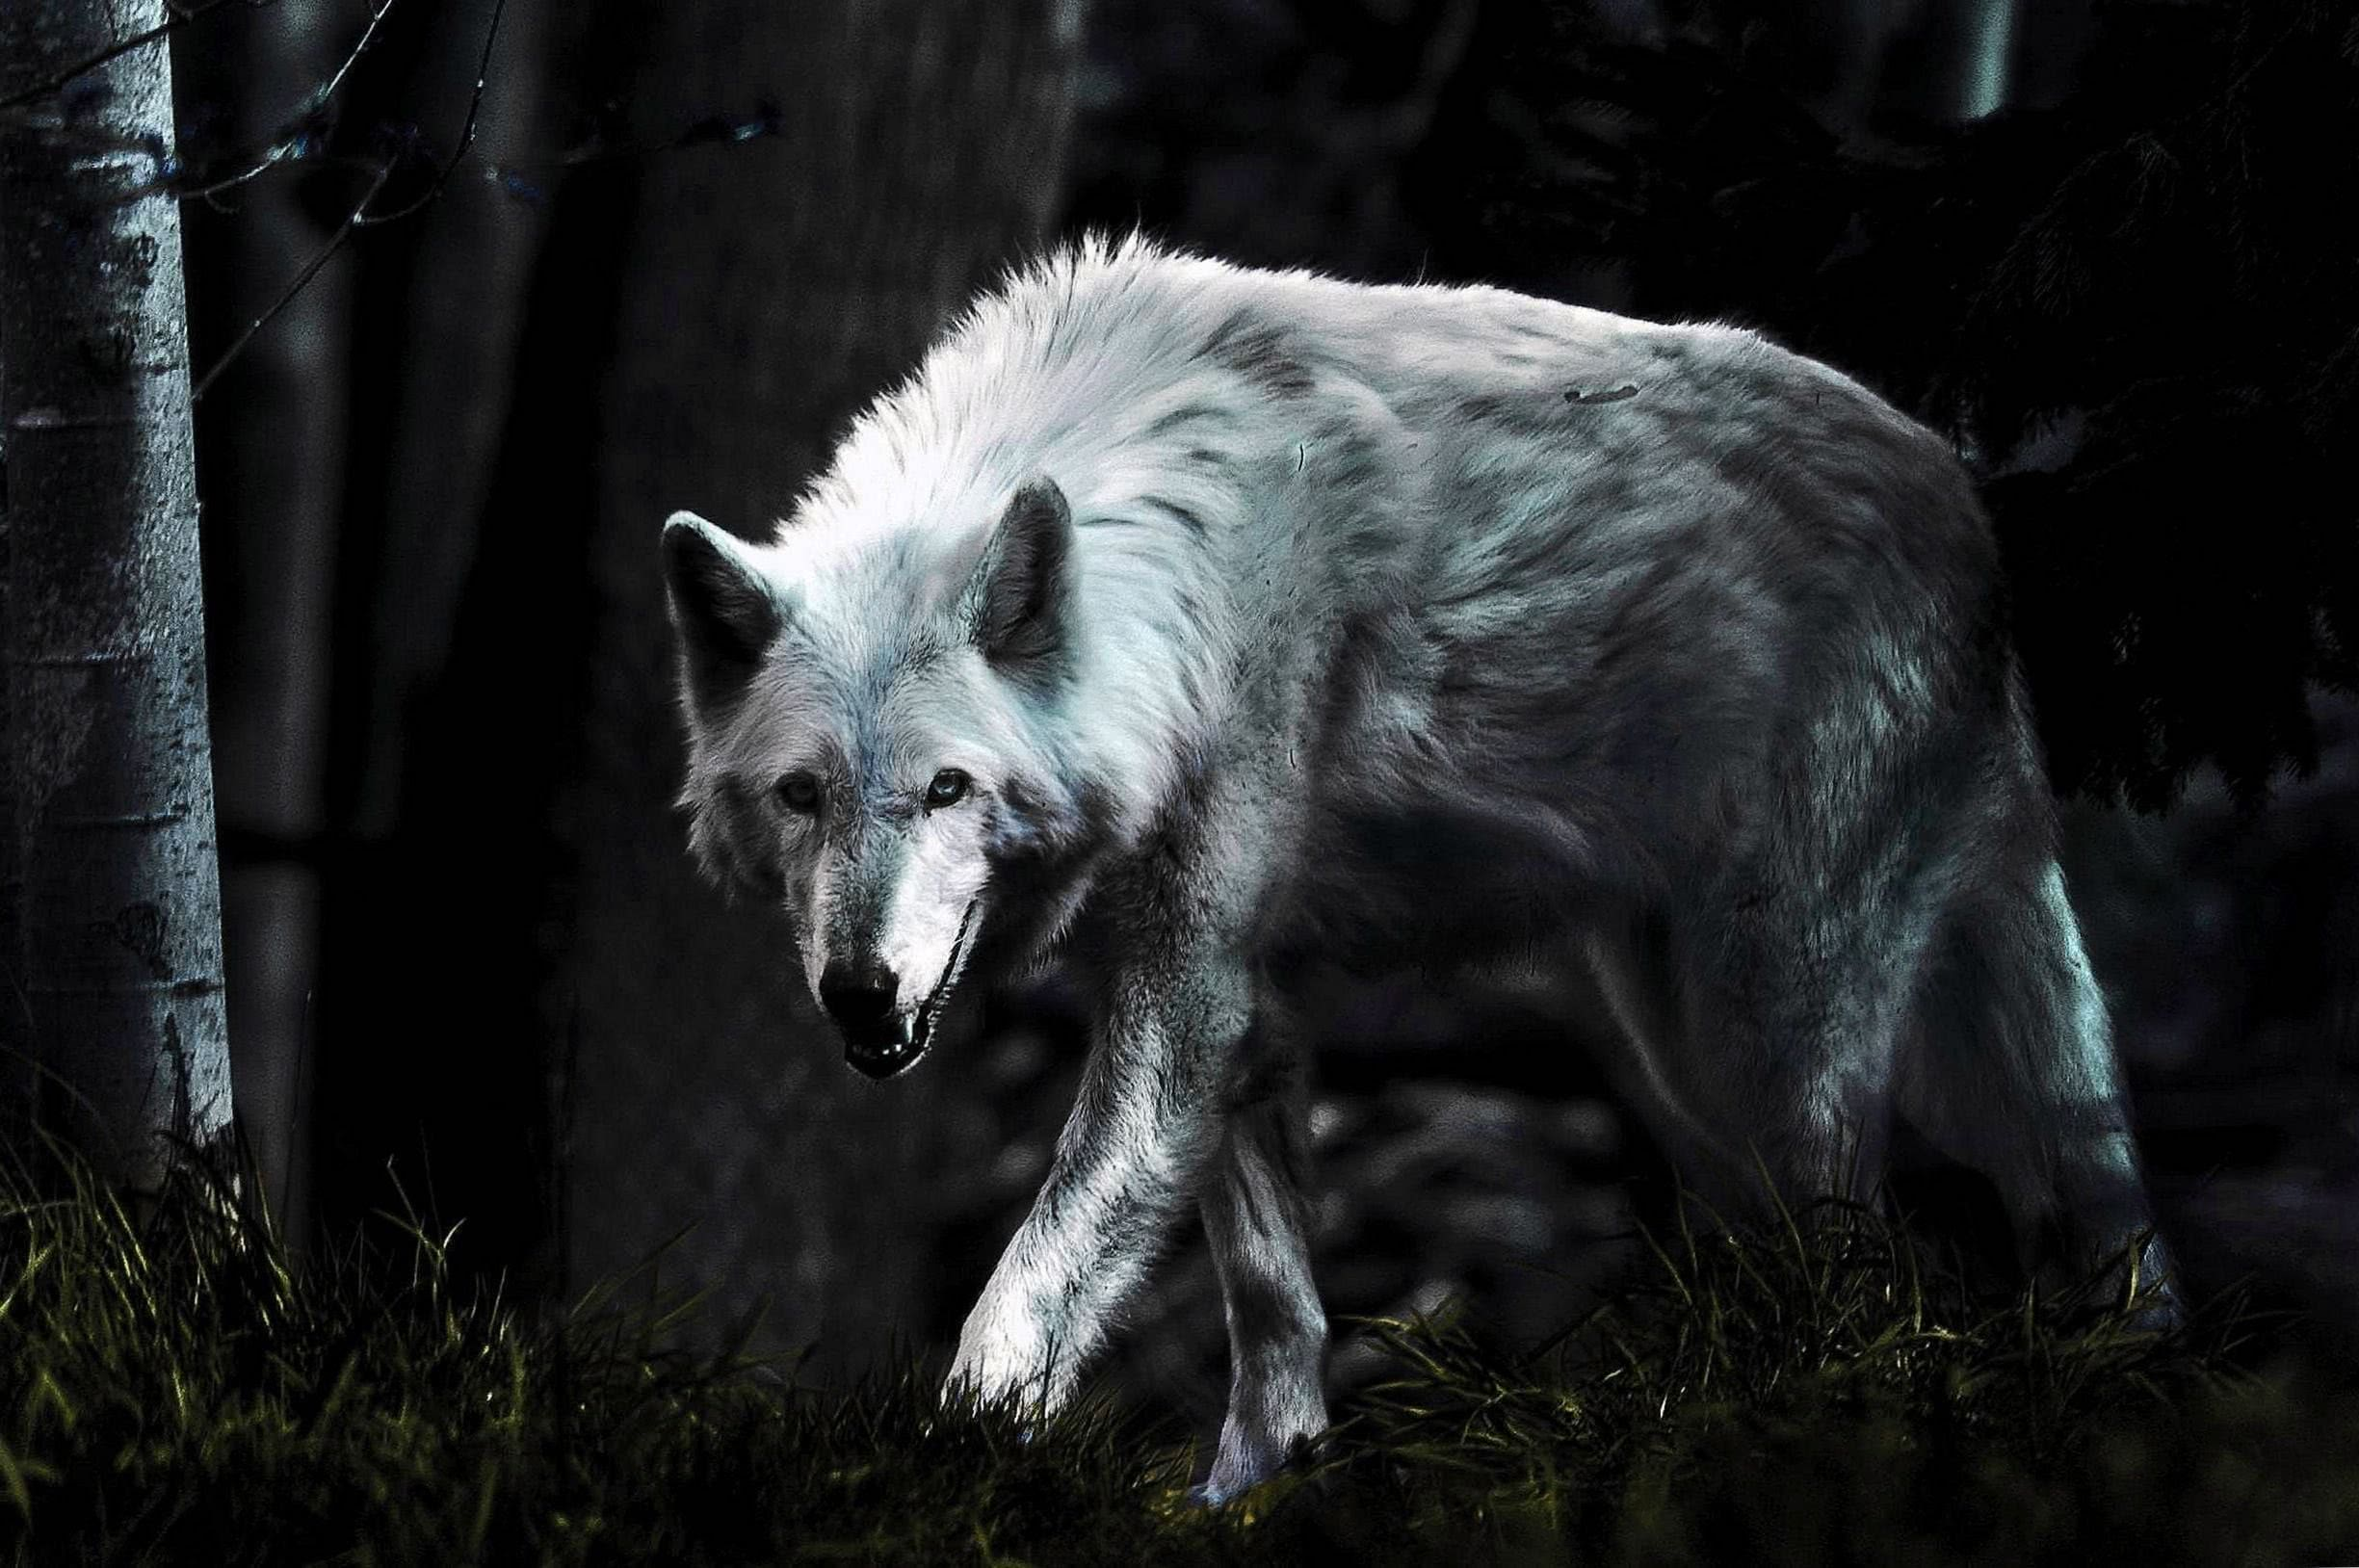 Dark Wolf HD Wallpaper For Mobile